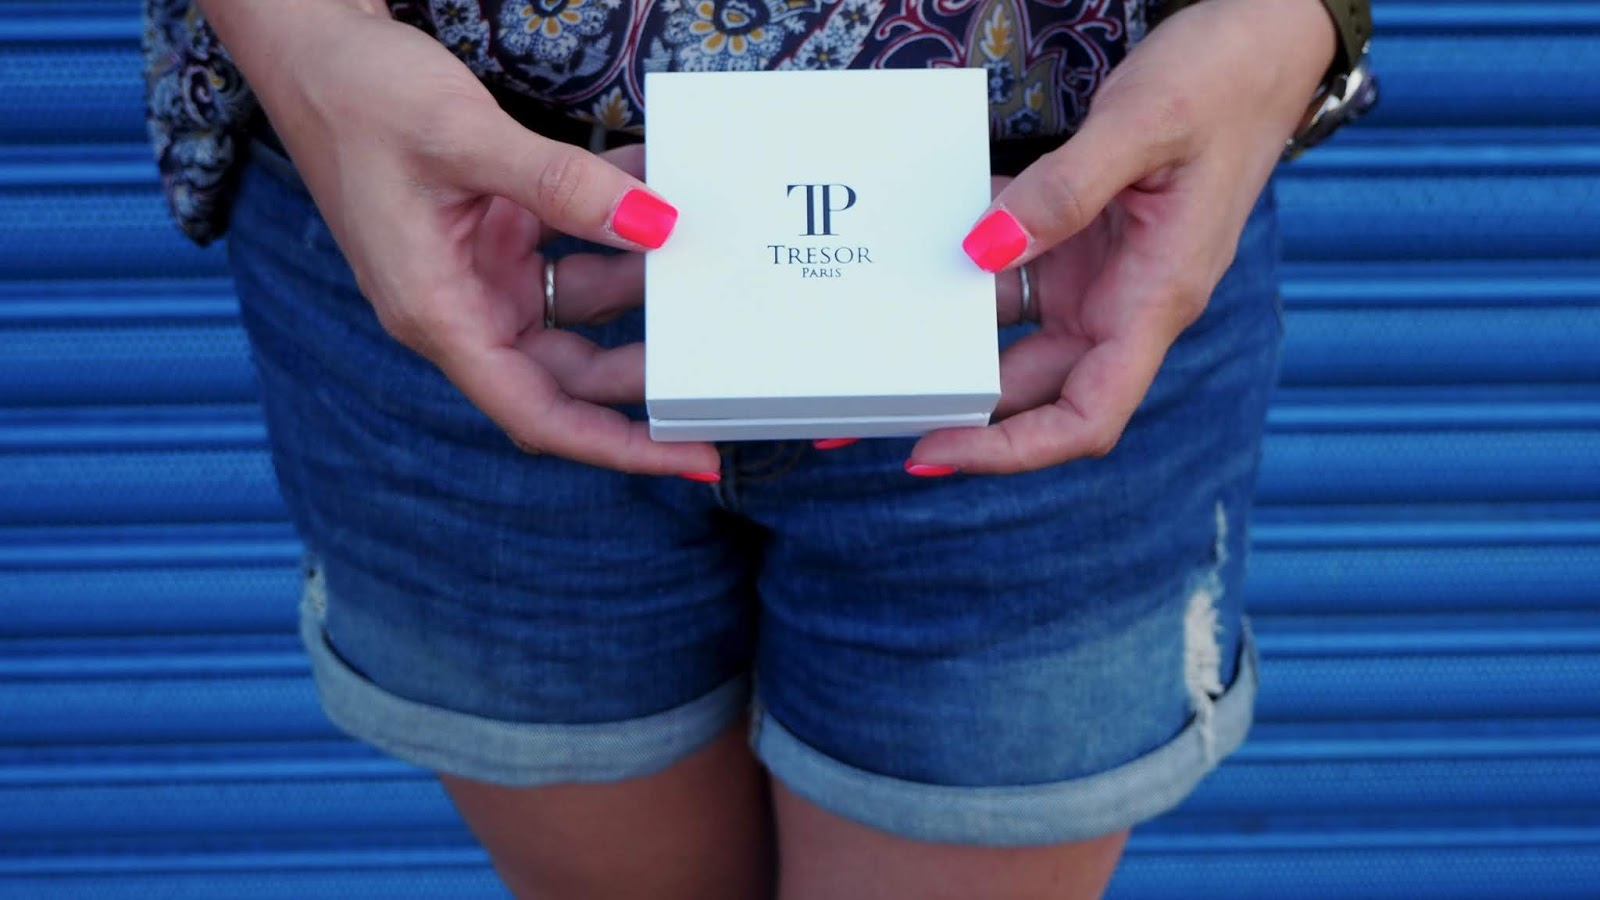 Tresor Paris Jewellery Gift Box